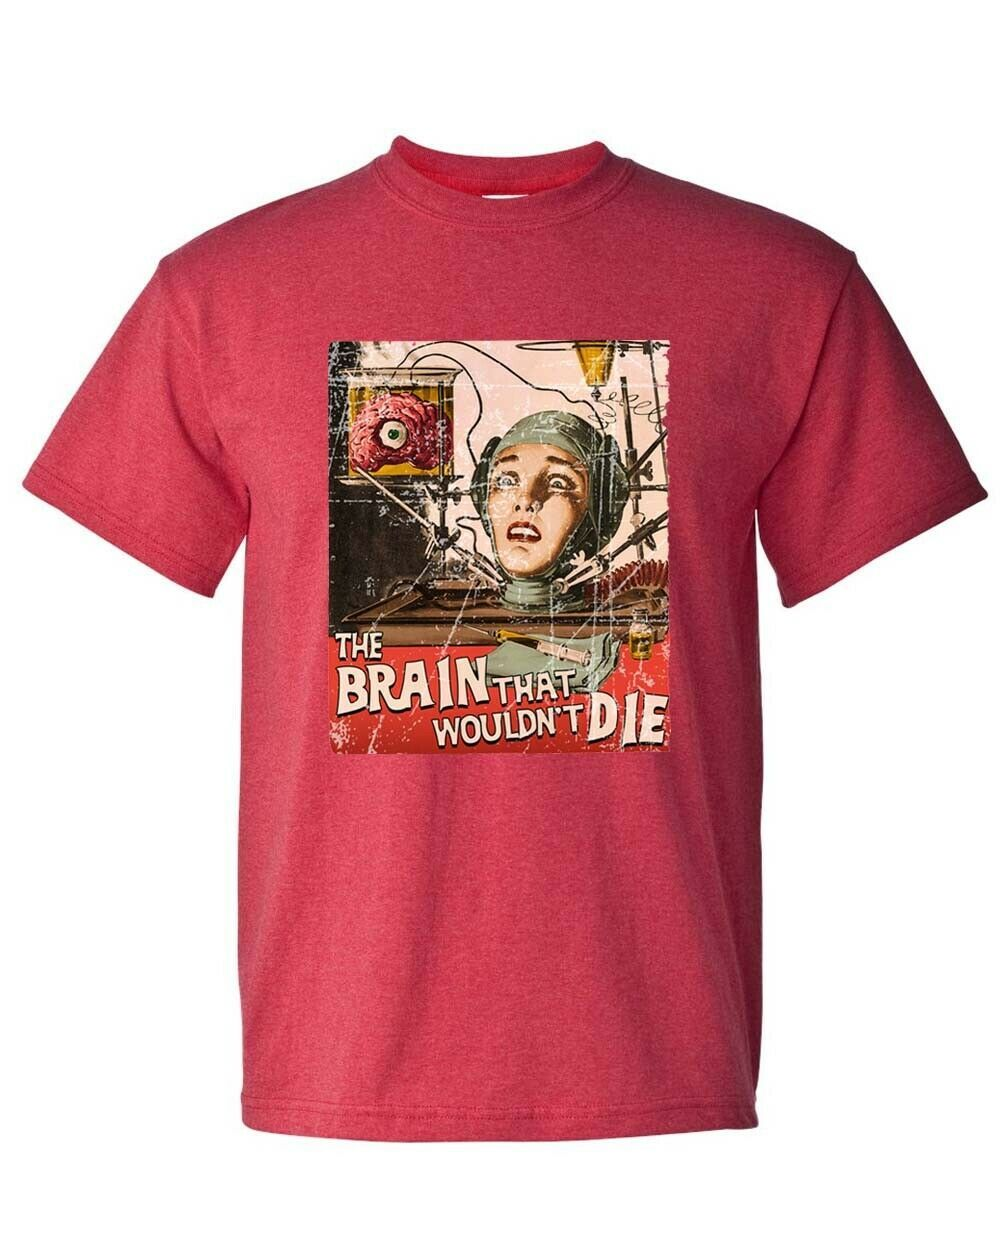 The Brain That Wouldnt Die T-shirt vintage sci fi horror film distressed tee